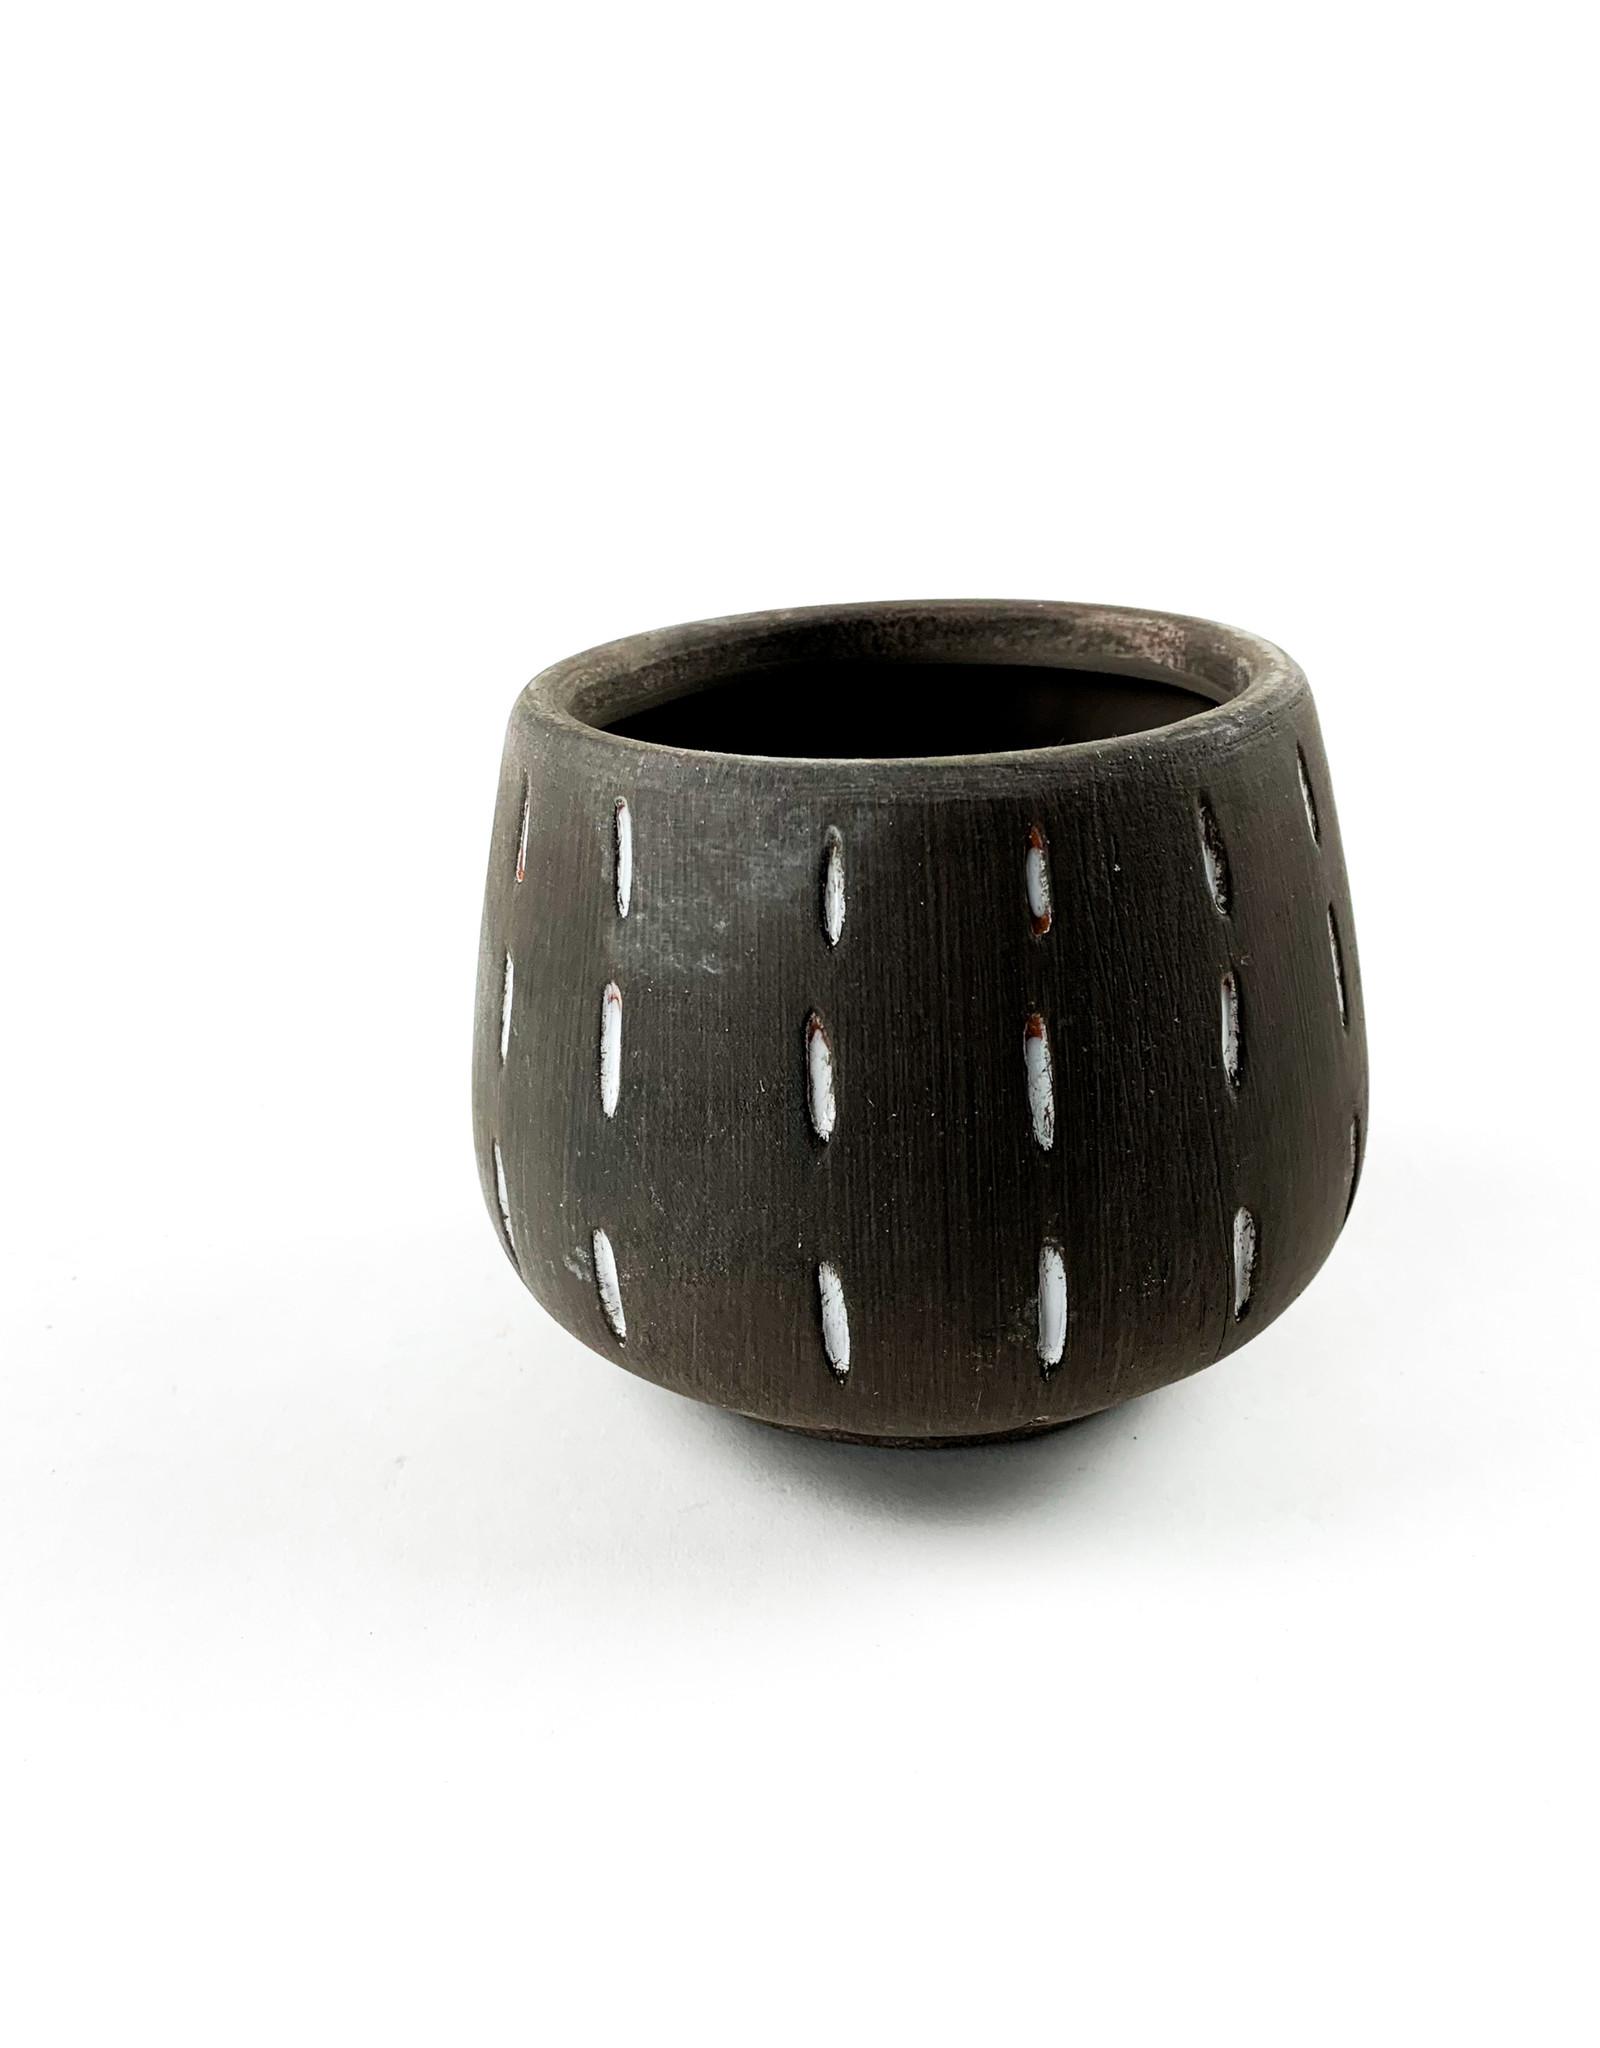 Creative Co-Op Terra Cotta Planter - Grey Lined